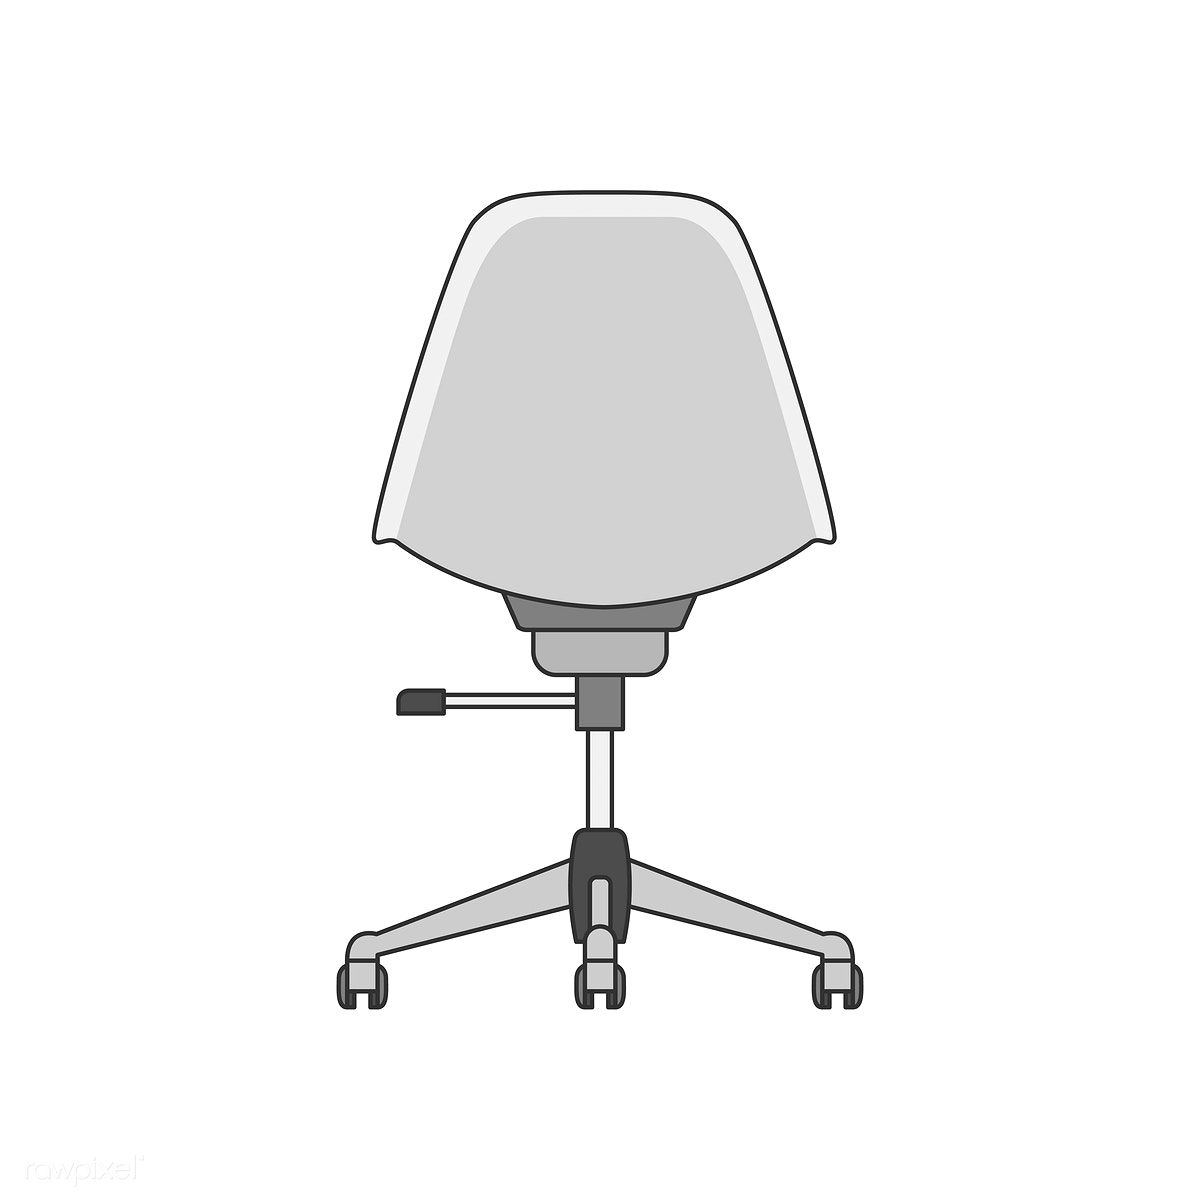 Illustration Of An Office Chair Free Image By Rawpixel Com Office Chair Chair Office Chair Design